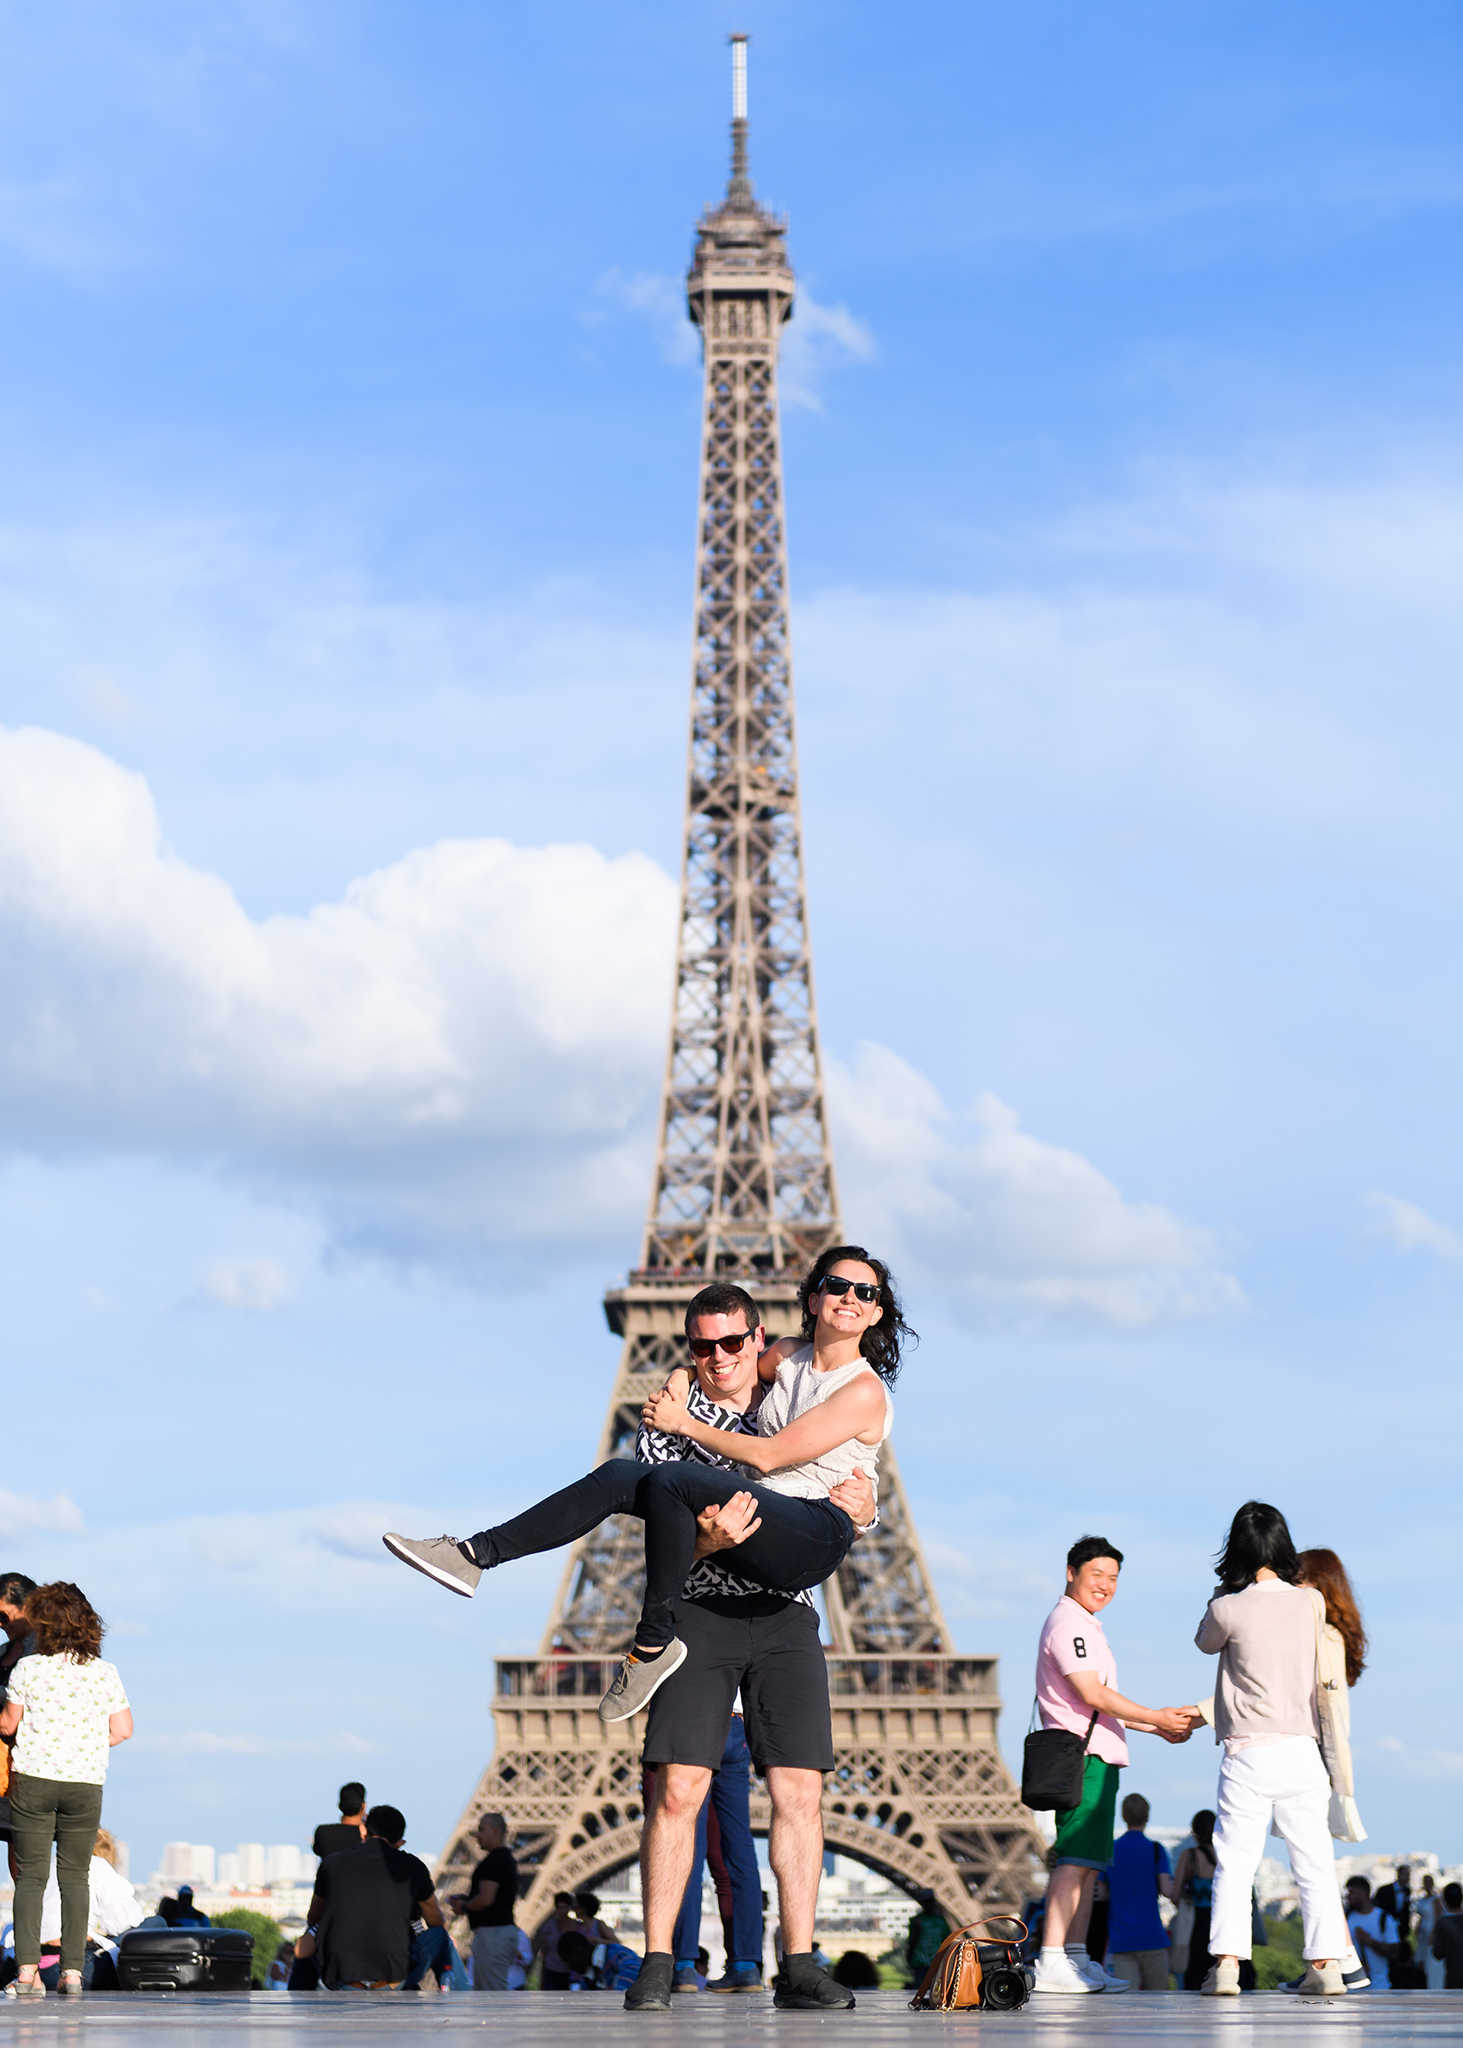 May 2017 - Our first trip to Europe together! We explored Paris for a few days before spending two weeks with Molly's family in England.